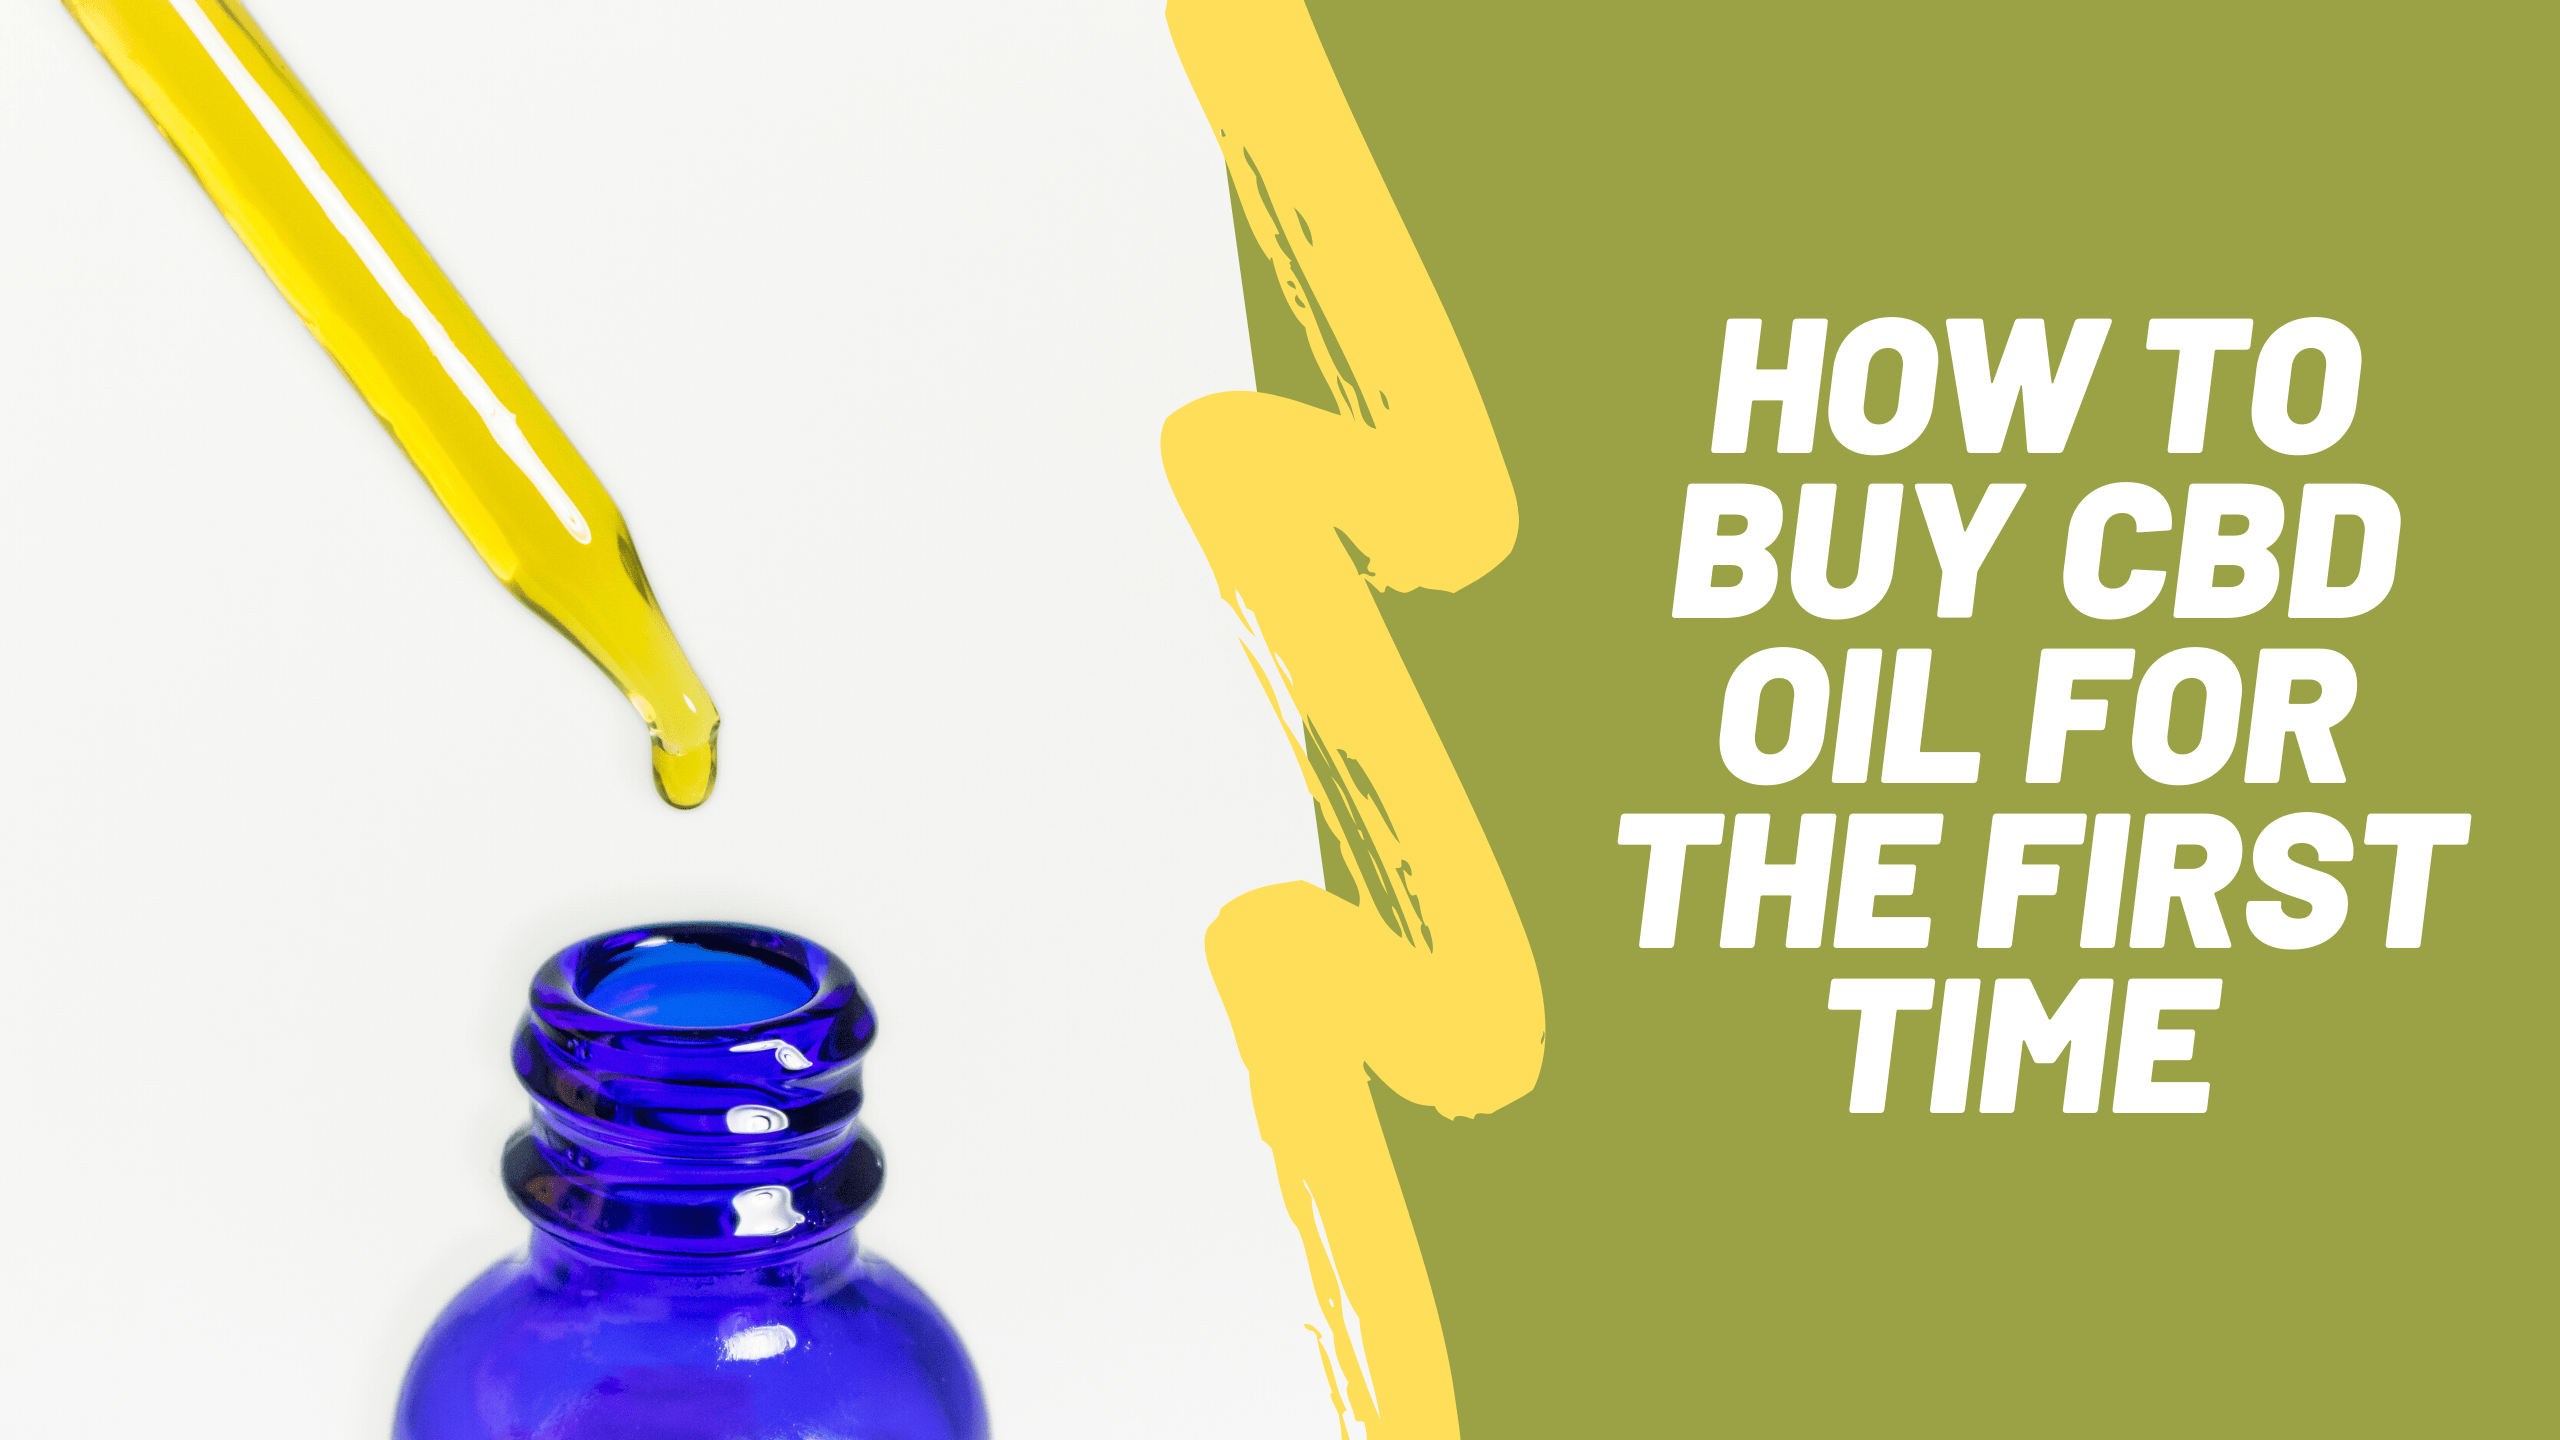 HOW TO BUY CBD OIL FOR THE FIRST TIME – Get the Check List